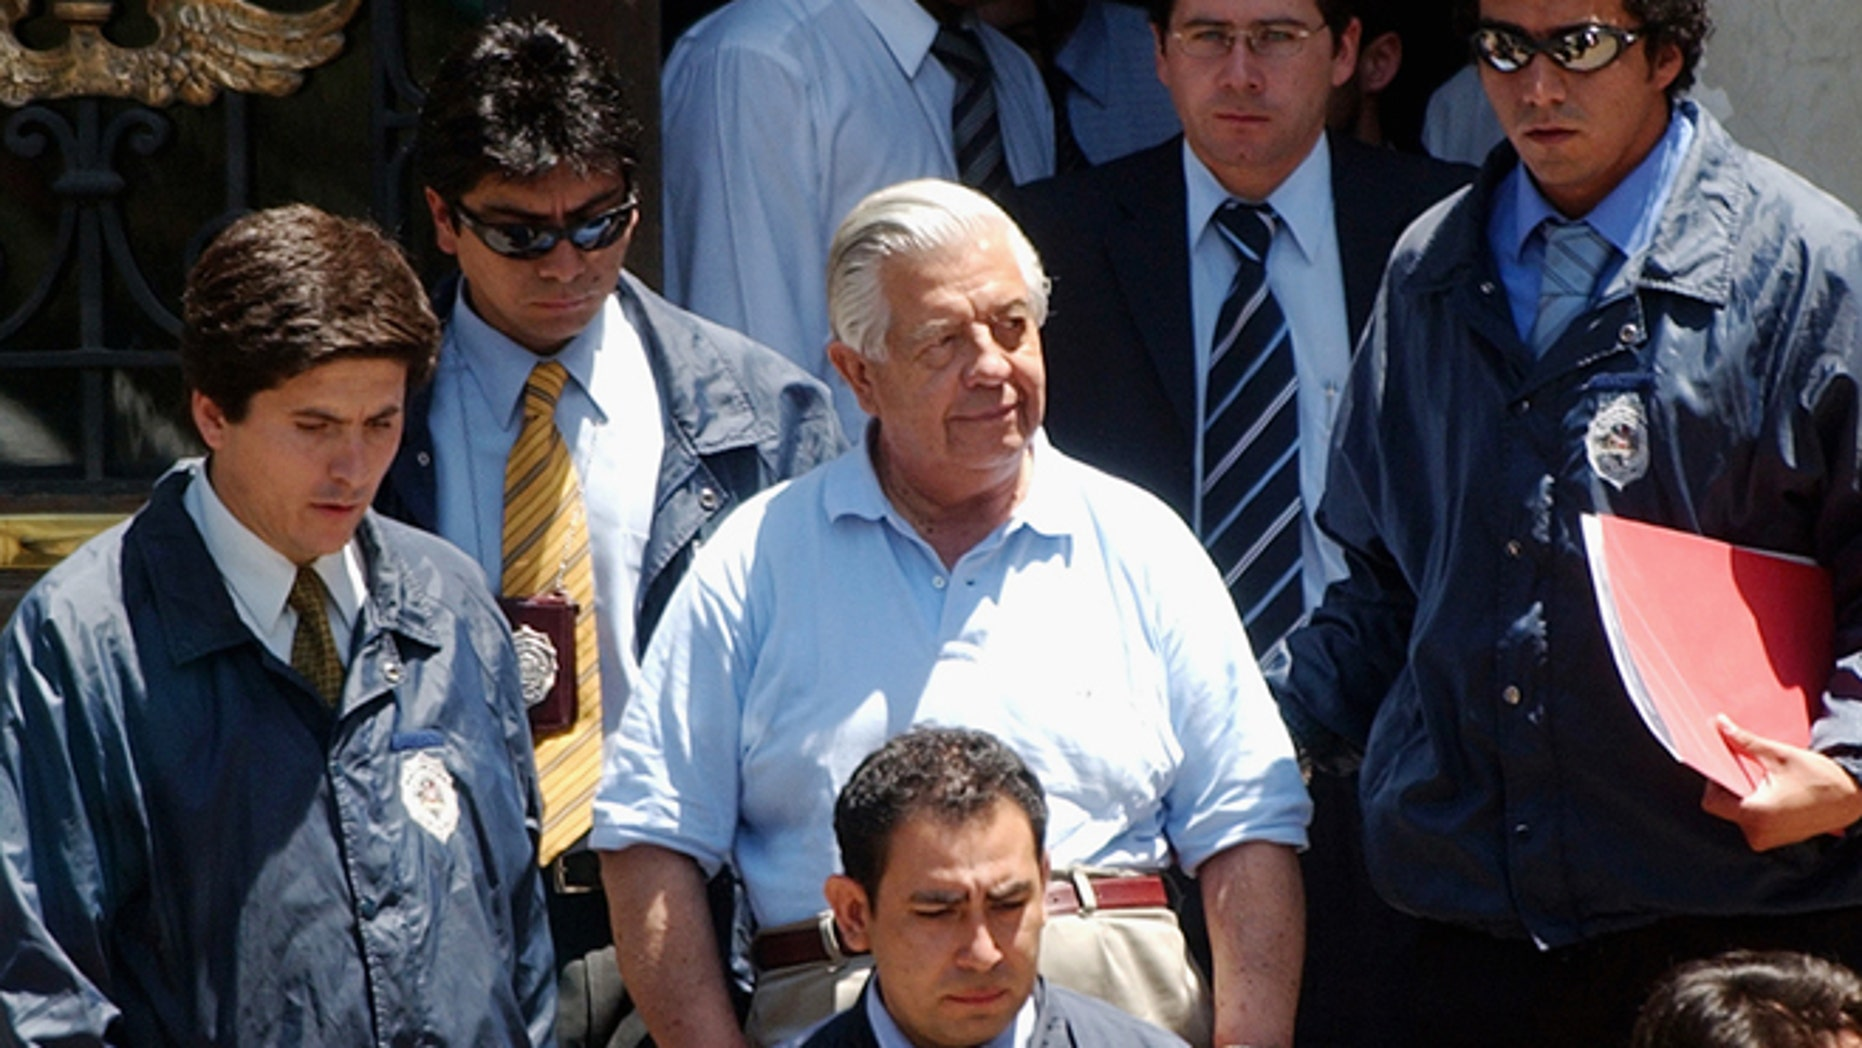 FILE.- In this Jan. 28, 2005 file photo retired Gen. Manuel Contreras, center,  is escorted by police officers in Santiago, Chile.   According to Chile's government, Contreras, the former chief of Chile's spy agency responsible for the kidnapping and torture of thousands during the Pinochet military dictatorship died Friday in Santiago's military hospital. He was 86.(AP Photo, File)